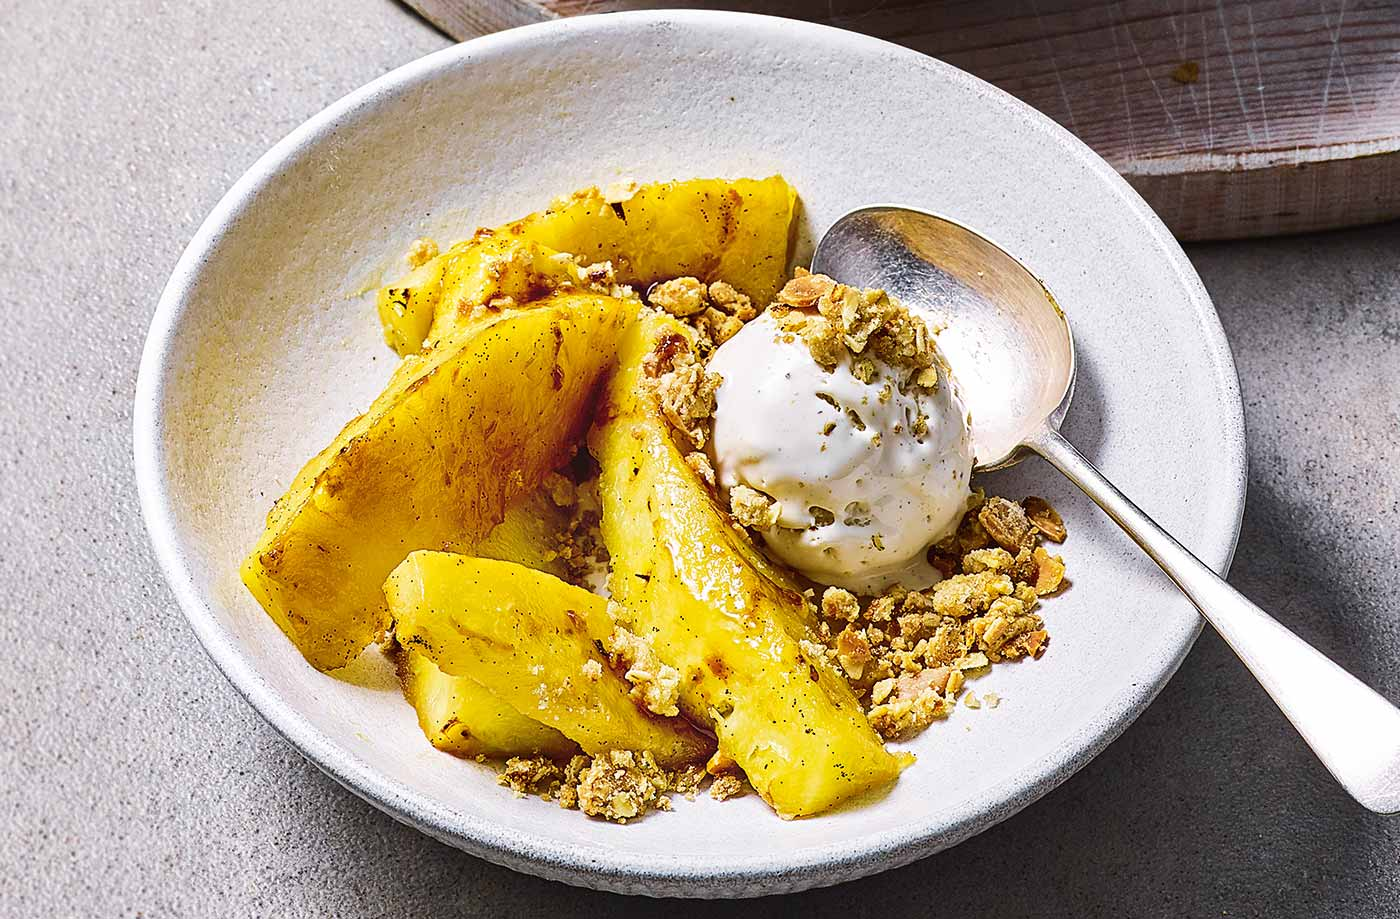 Roasted pineapple and almond crumble recipe